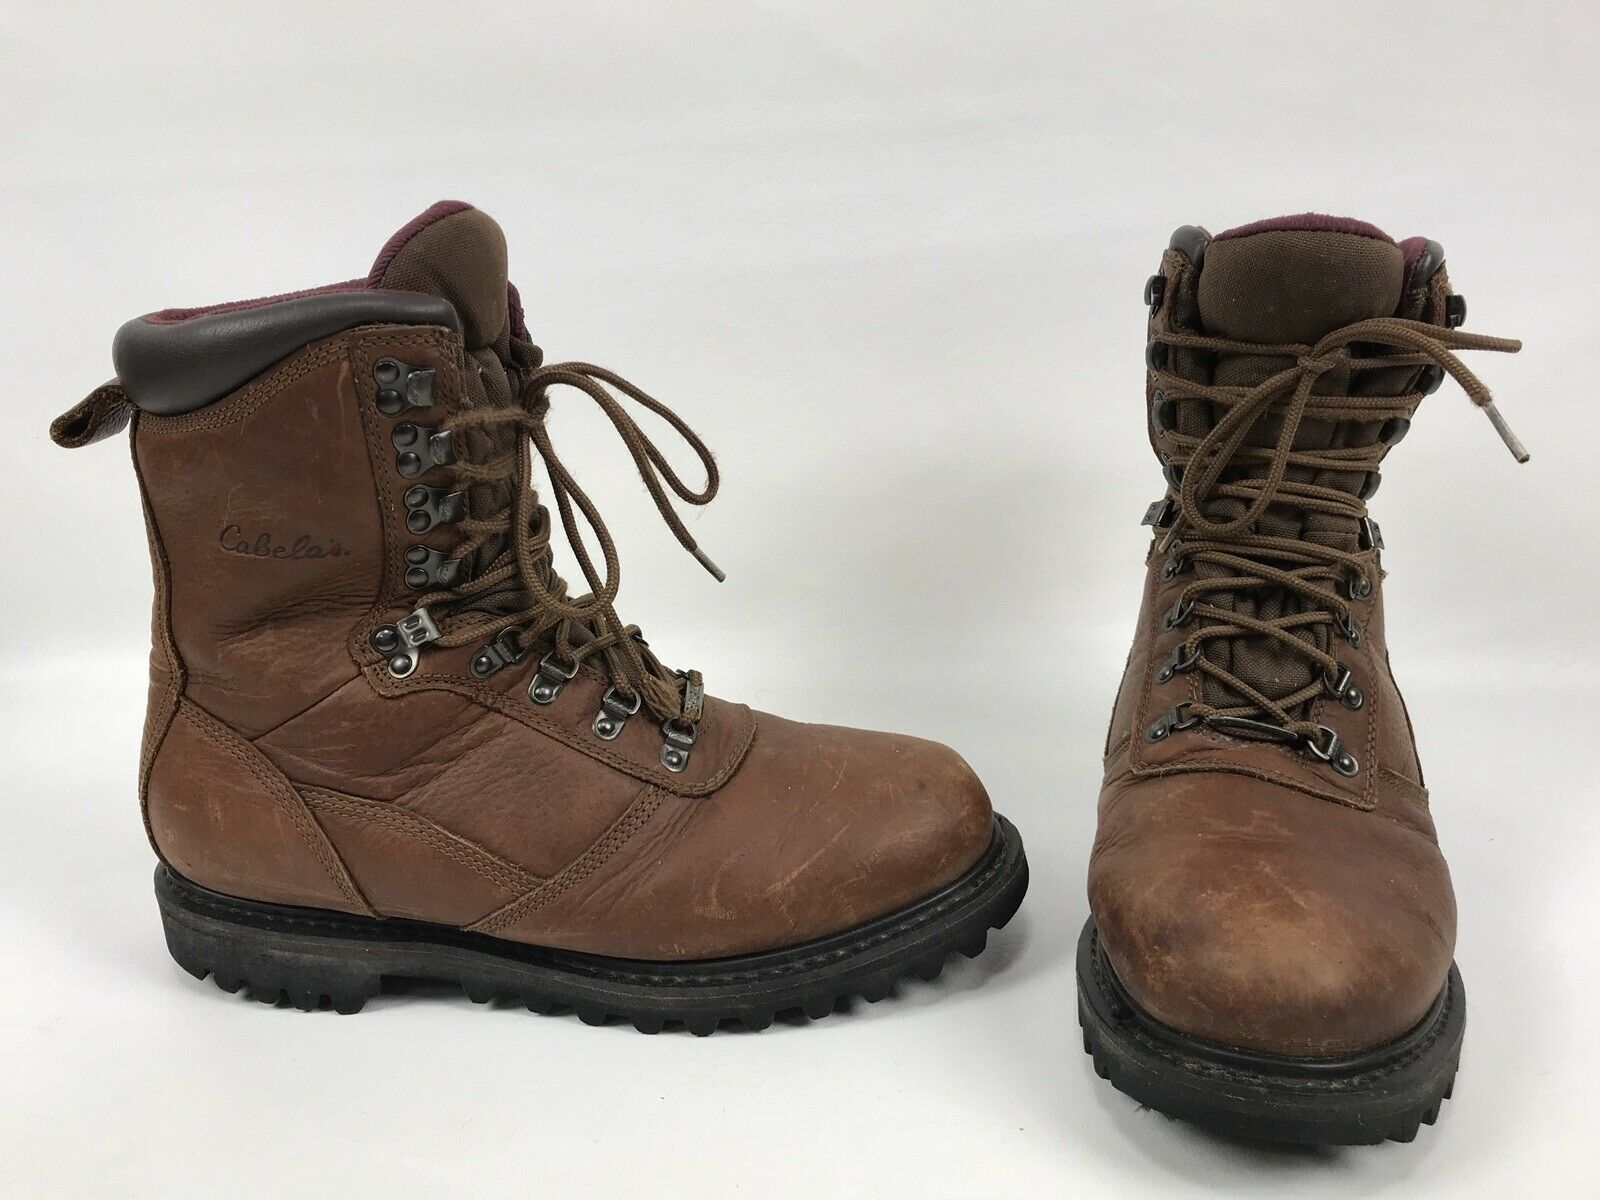 8c2a42d636b8 Cabelas Gore Tex Thinsulate Boots Mens Size 10.5 D Brown Hiking Work shoes  10